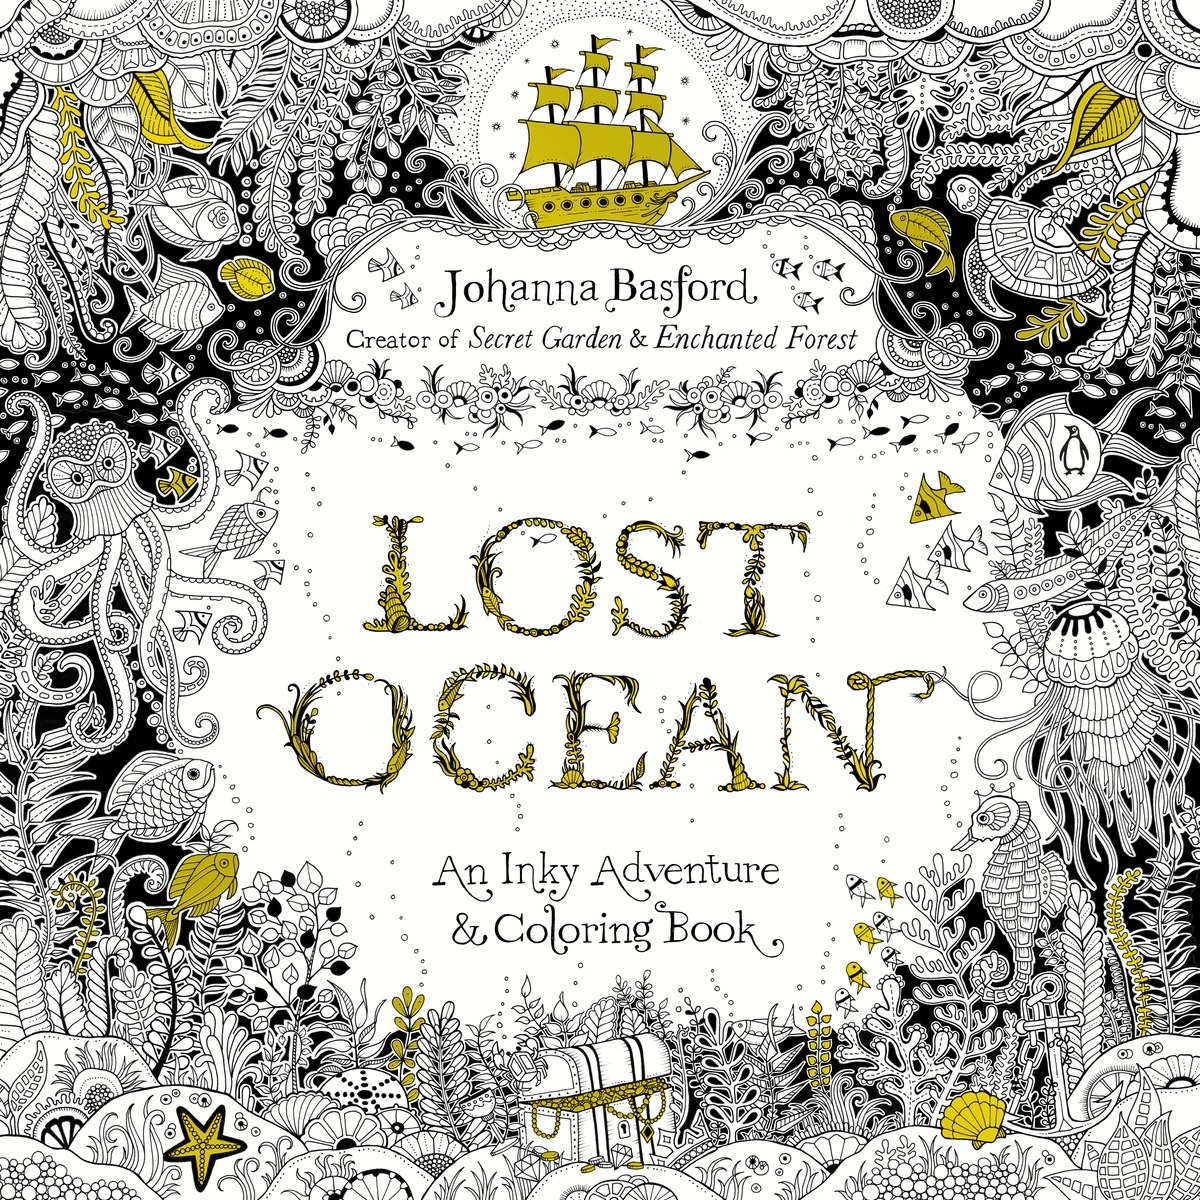 Zen ocean colouring book - Lost Ocean An Inky Adventure And Coloring Book For Adults By Johanna Basford